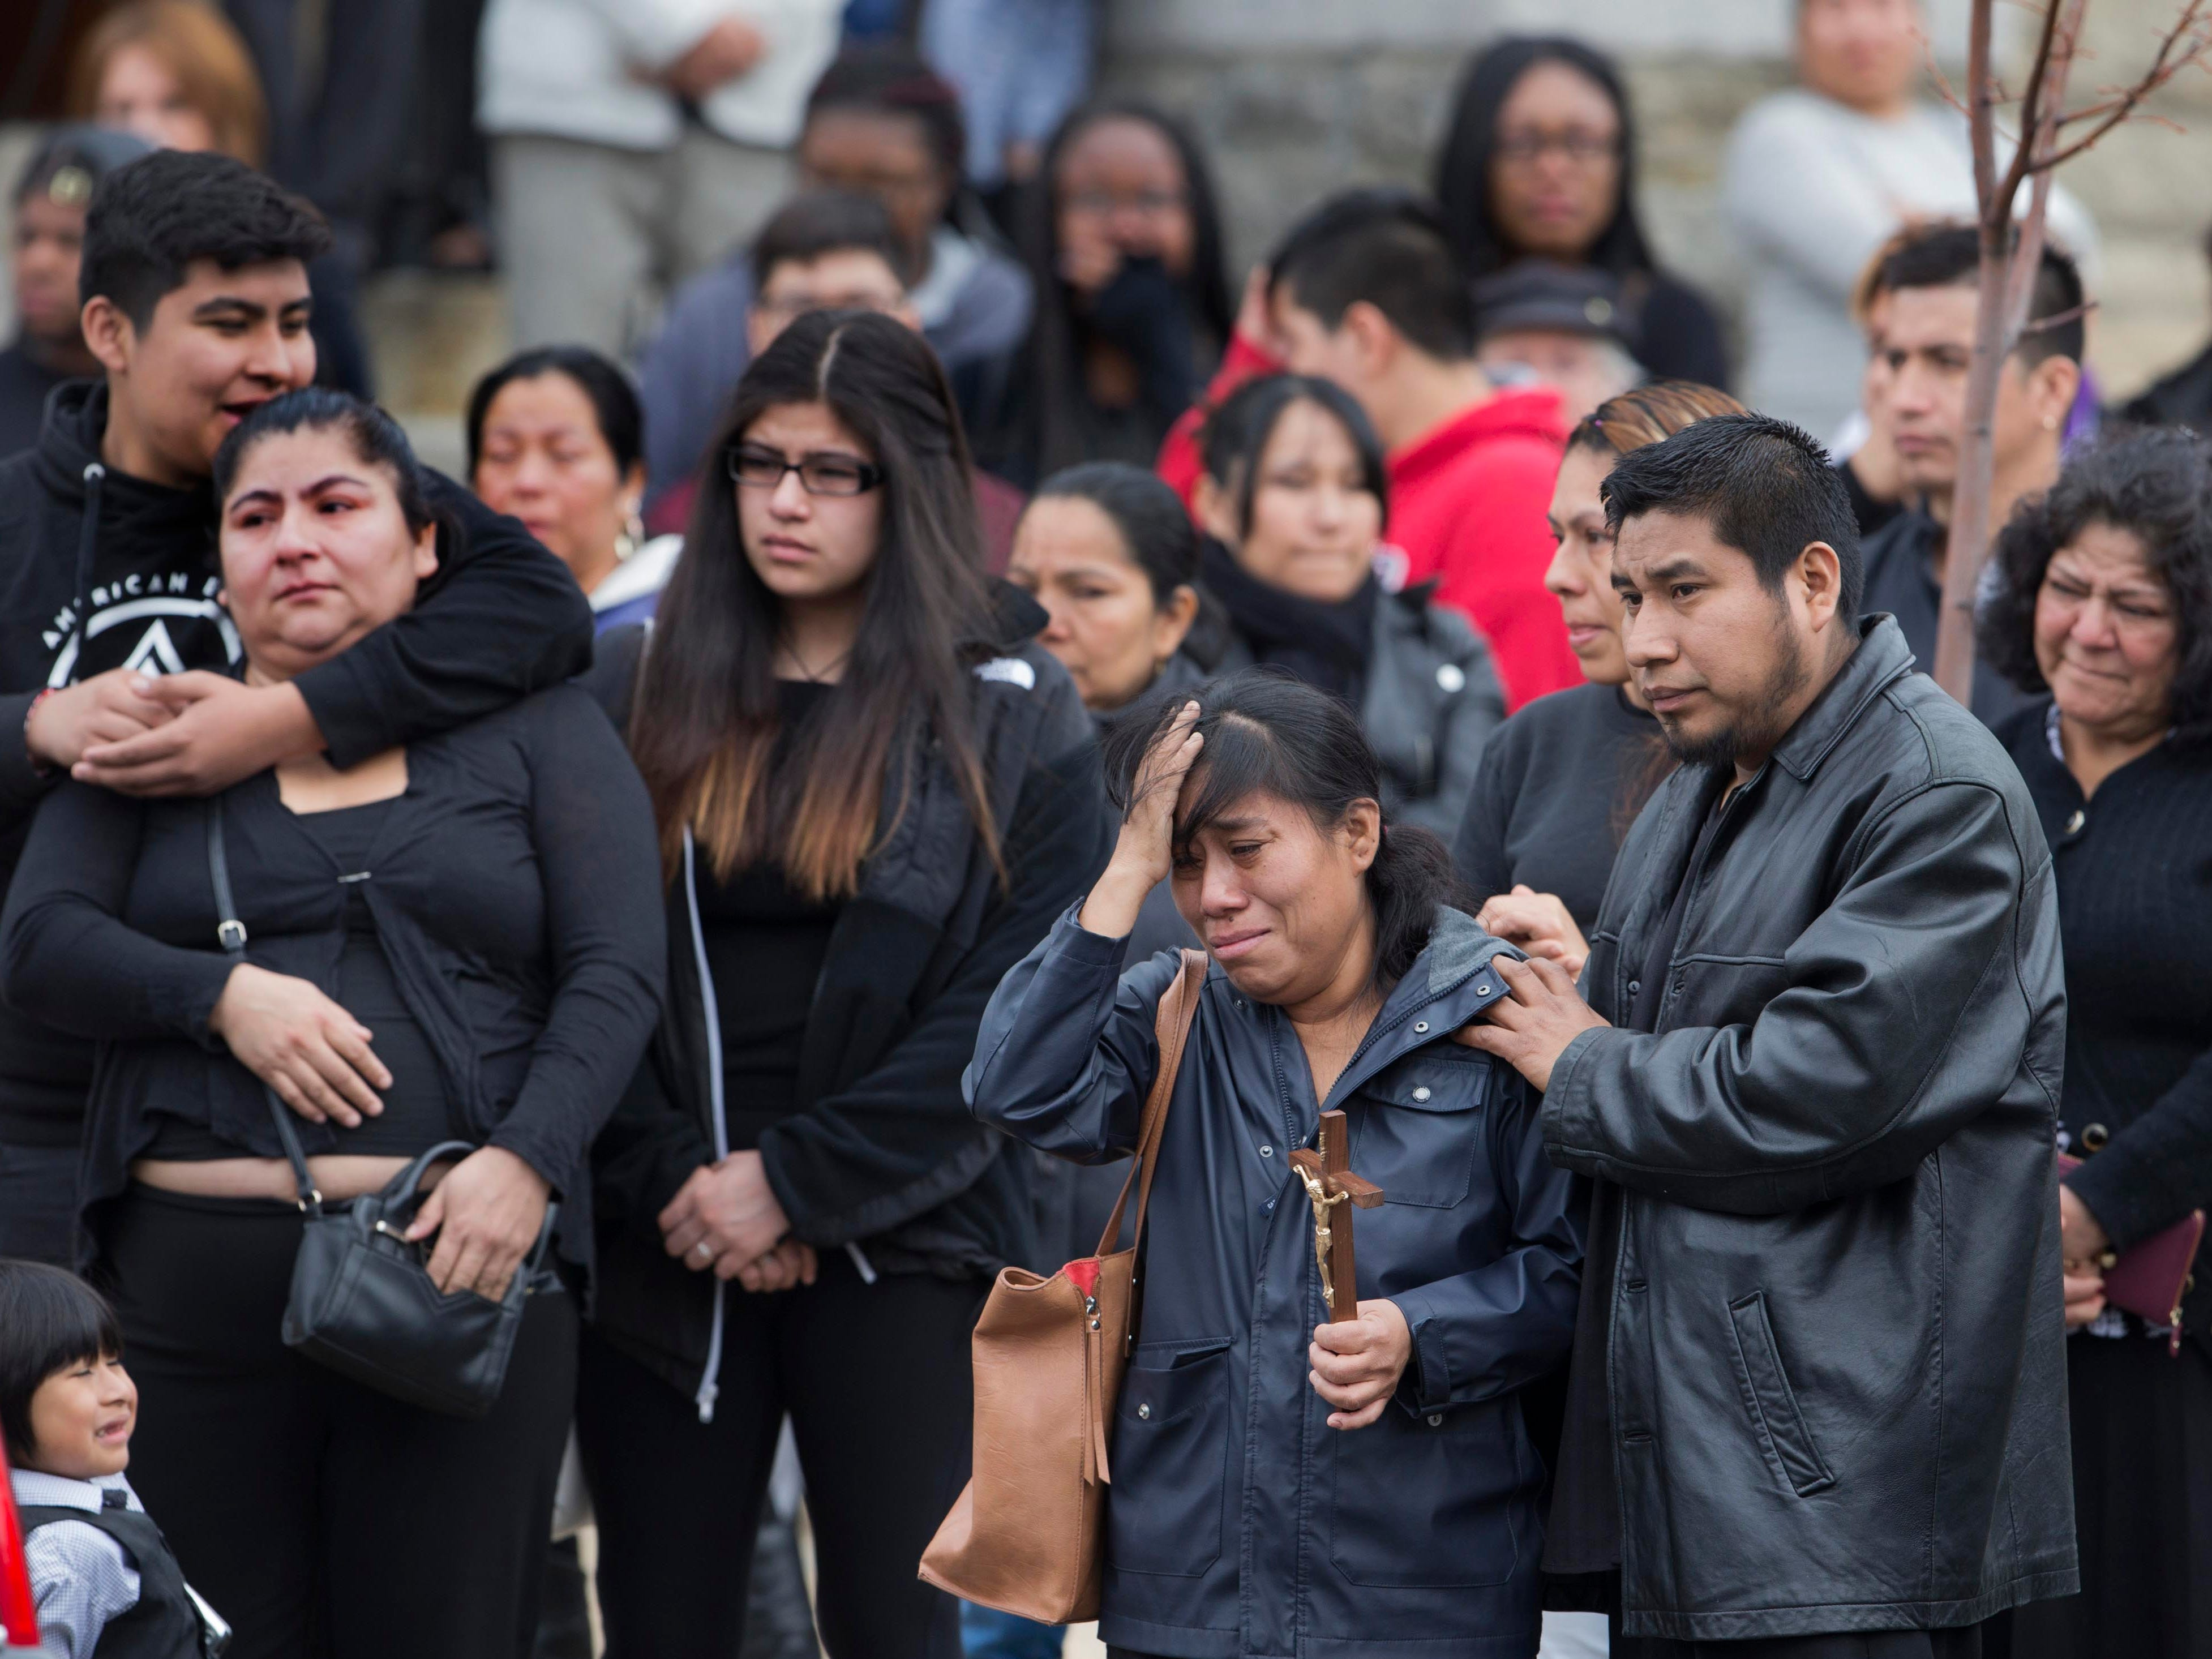 Mourners wait as the hearse is loaded with casket during funeral service for 10 year old Yovanni Banos-Mereno at Holy Spirit Roman Catholic Church.   The gunman was looking to shoot YovanniÕs older brother over a gang issue and the young boy was killed by a stray bullet.  3/1/2018